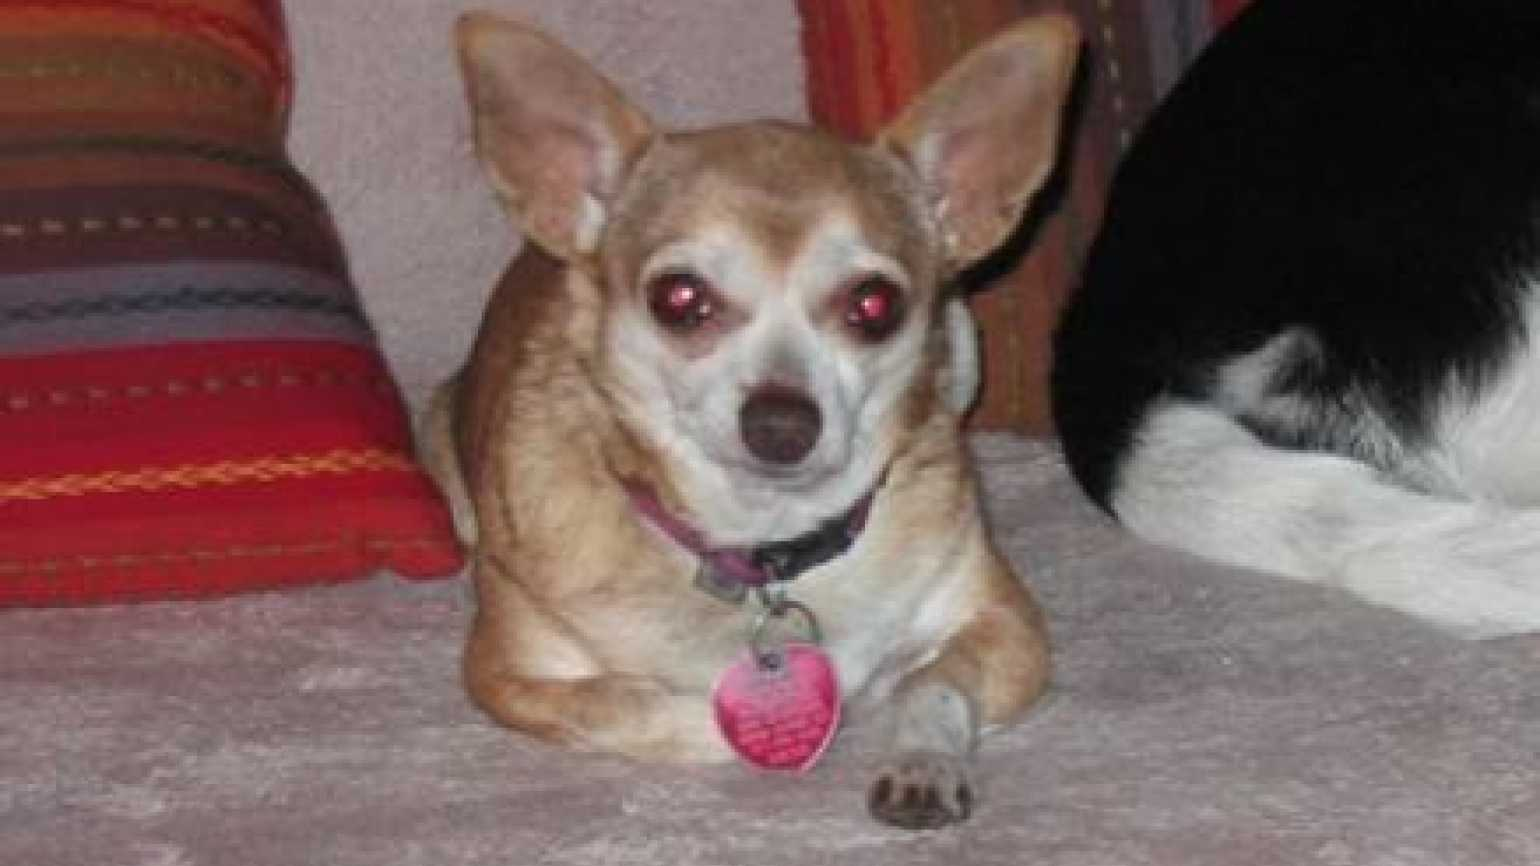 Daisy, the missing Chihuahua who was found thanks to the power of prayer